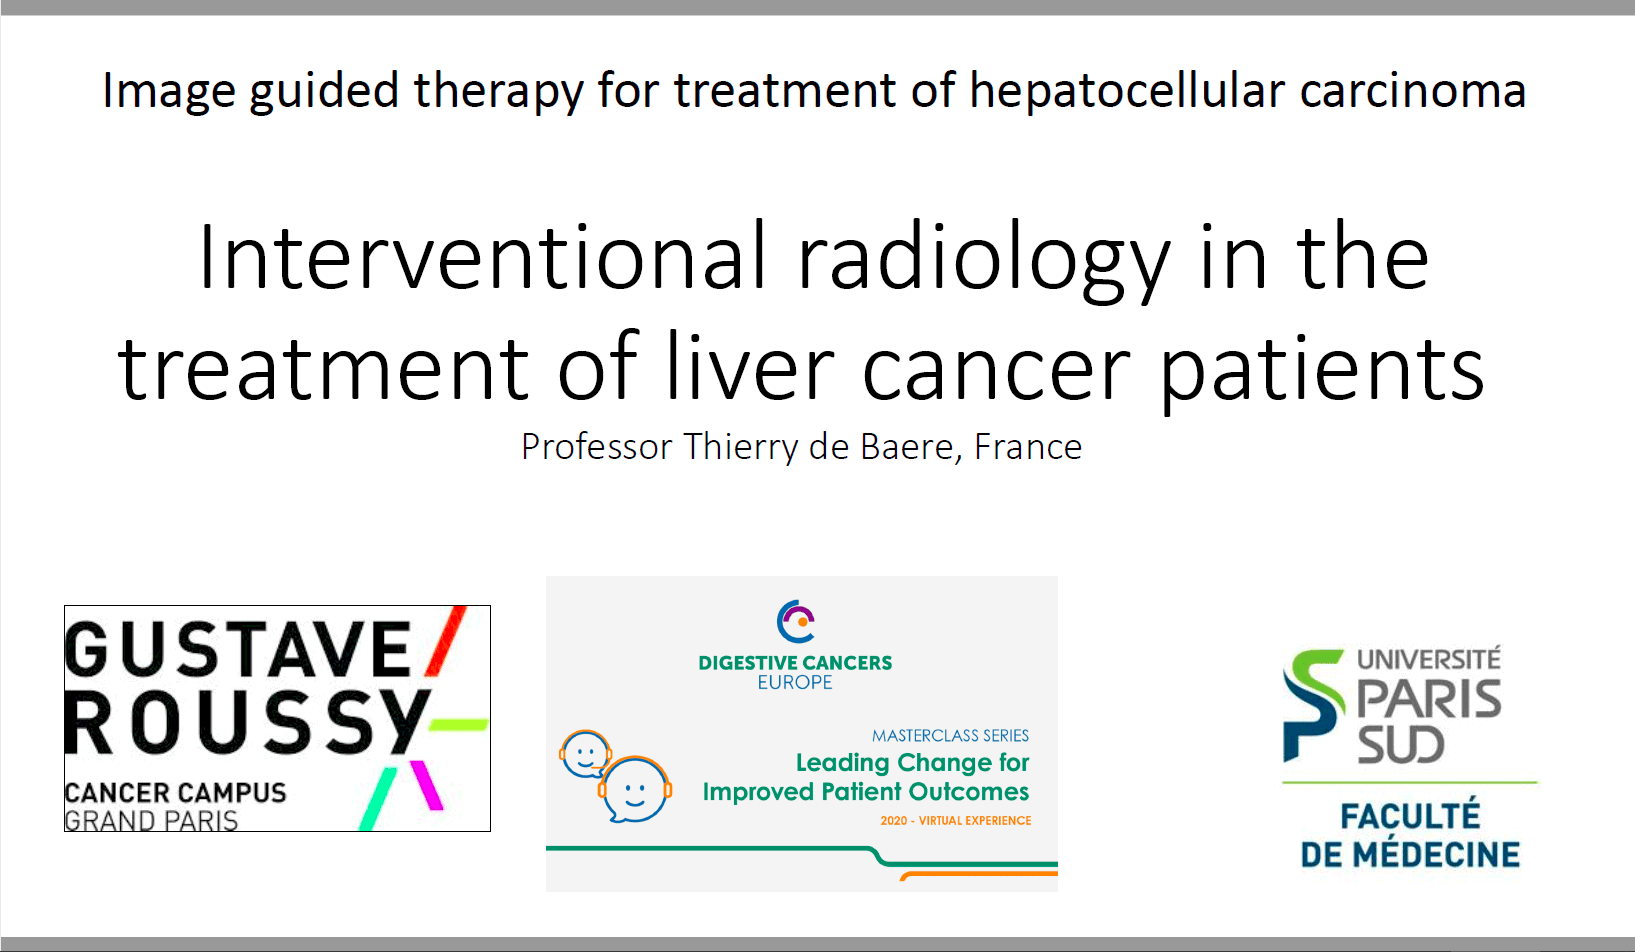 The Role of Interventional Radiology in the Treatment of Liver Cancer